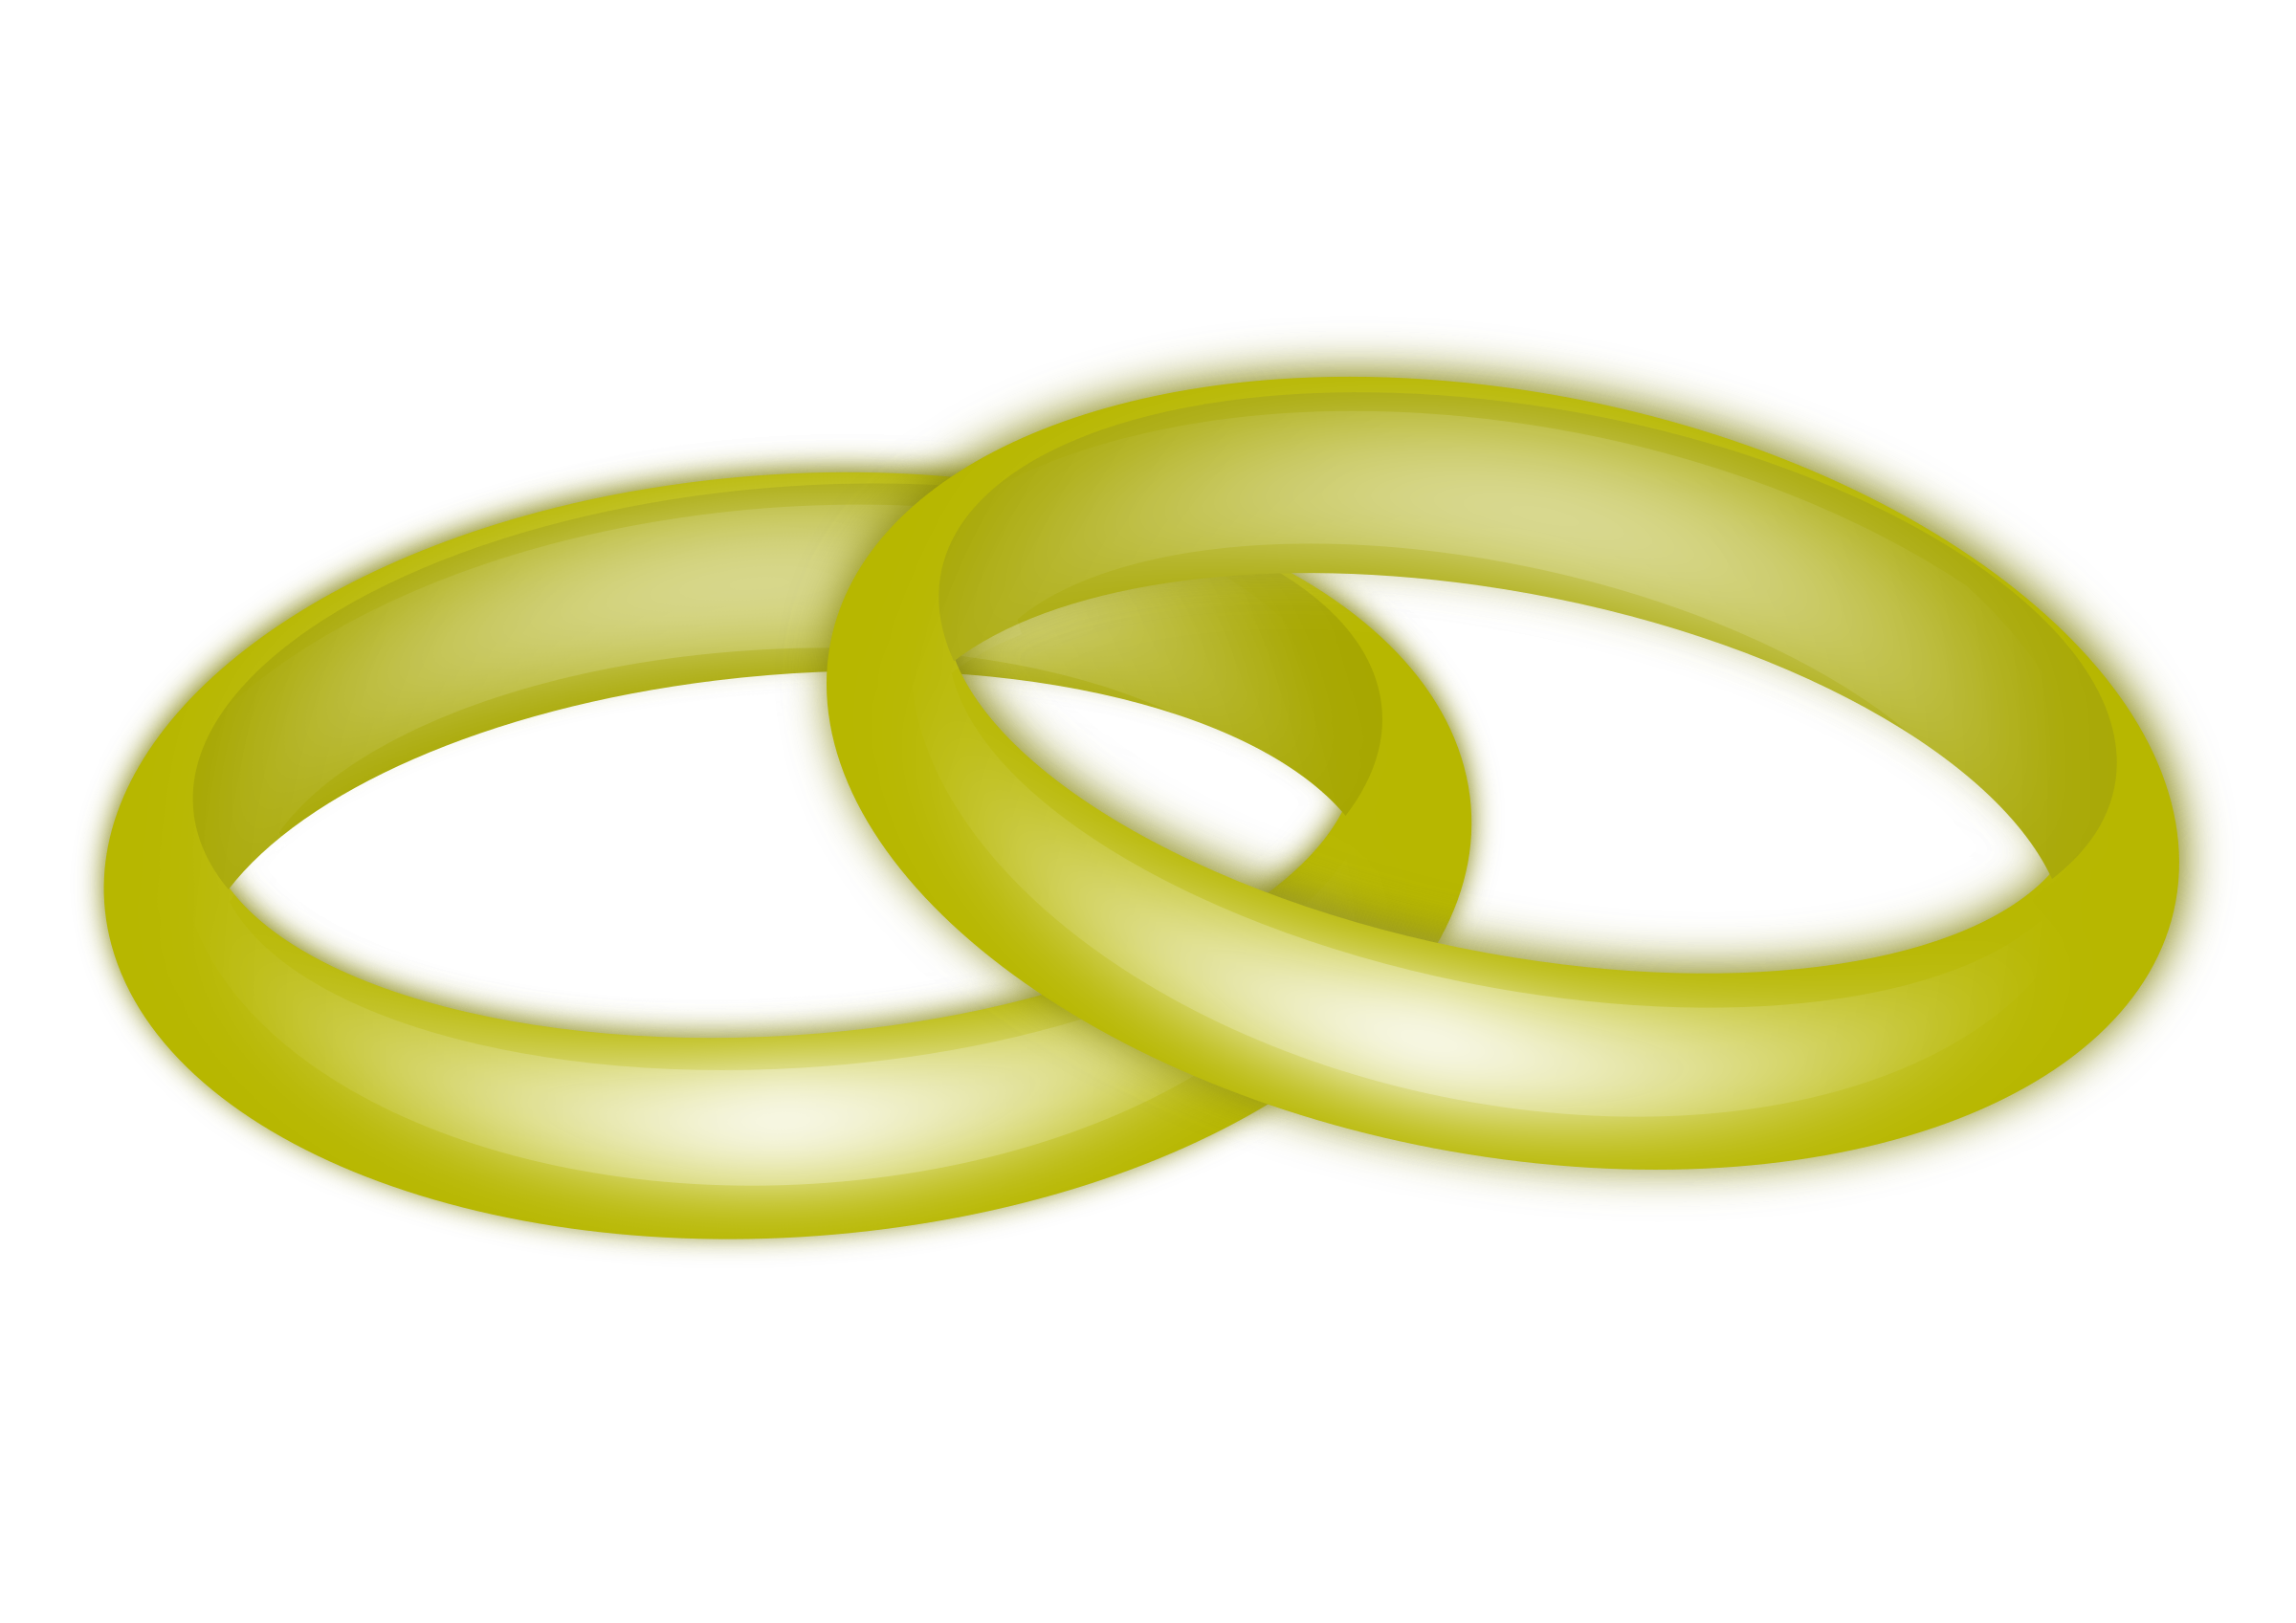 2400x1697 Amazing Wedding Rings Clipart Wedding Gallery